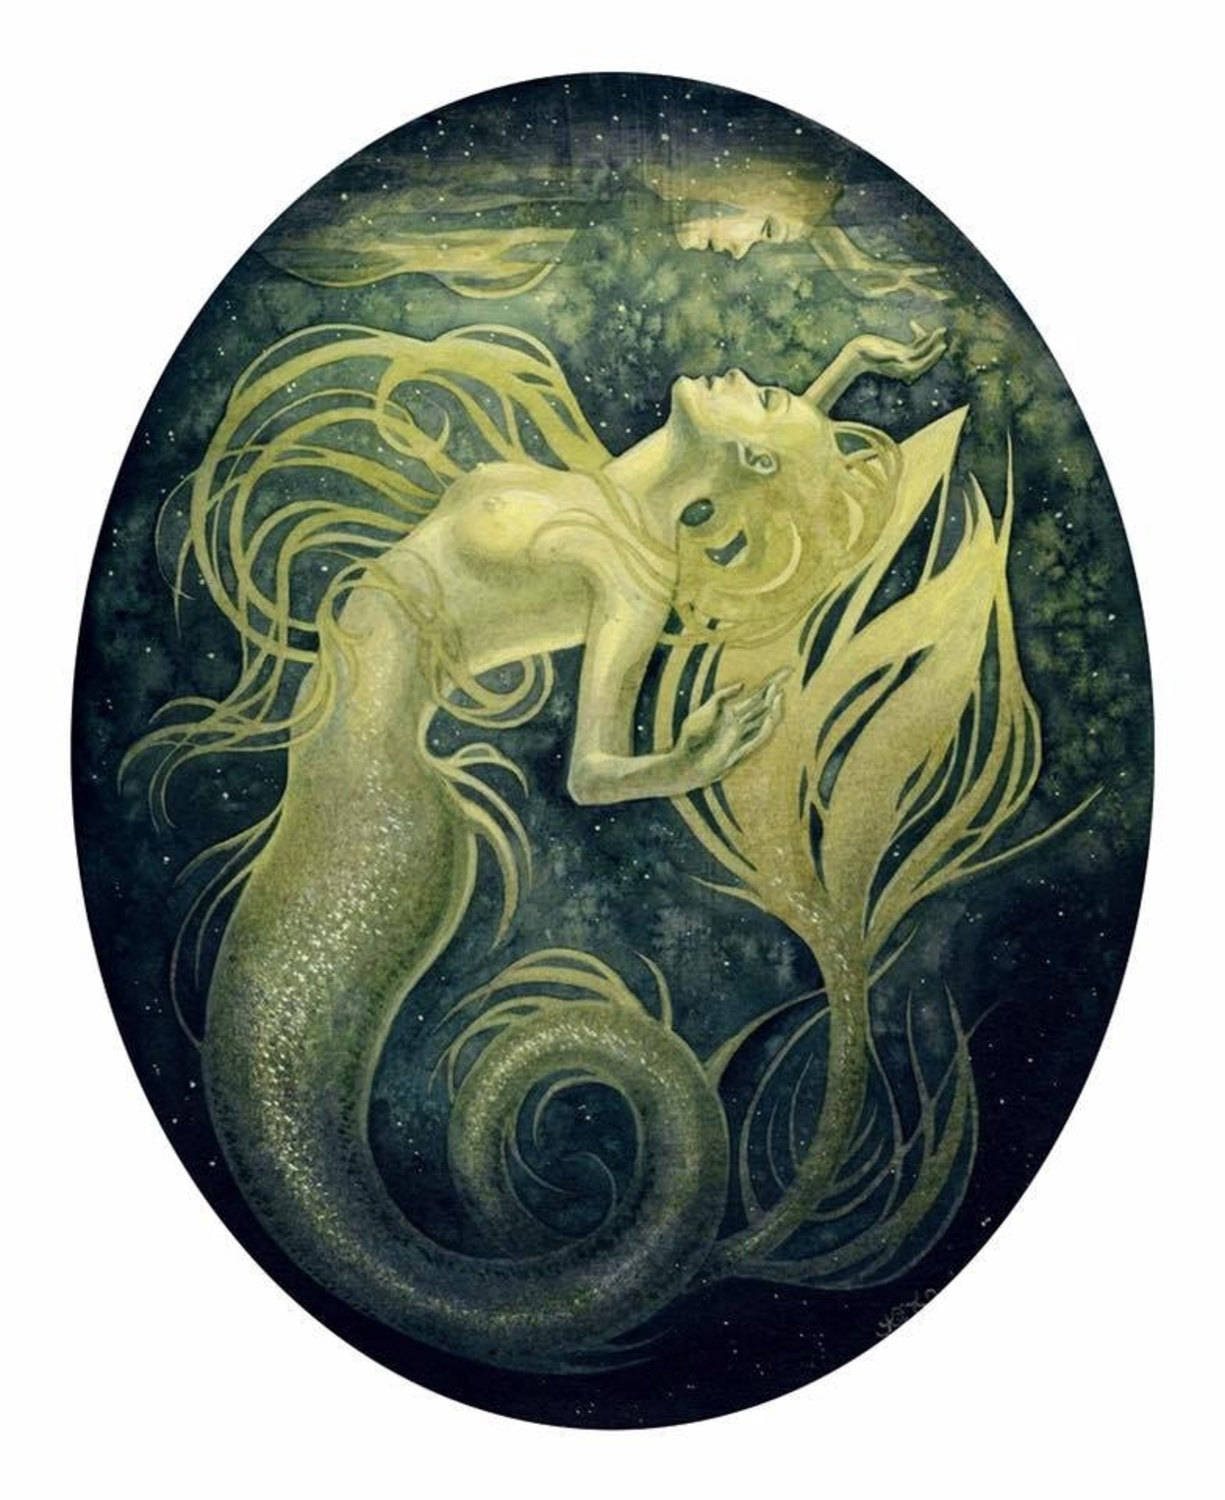 Incipient Artwork by Kelly McKernan